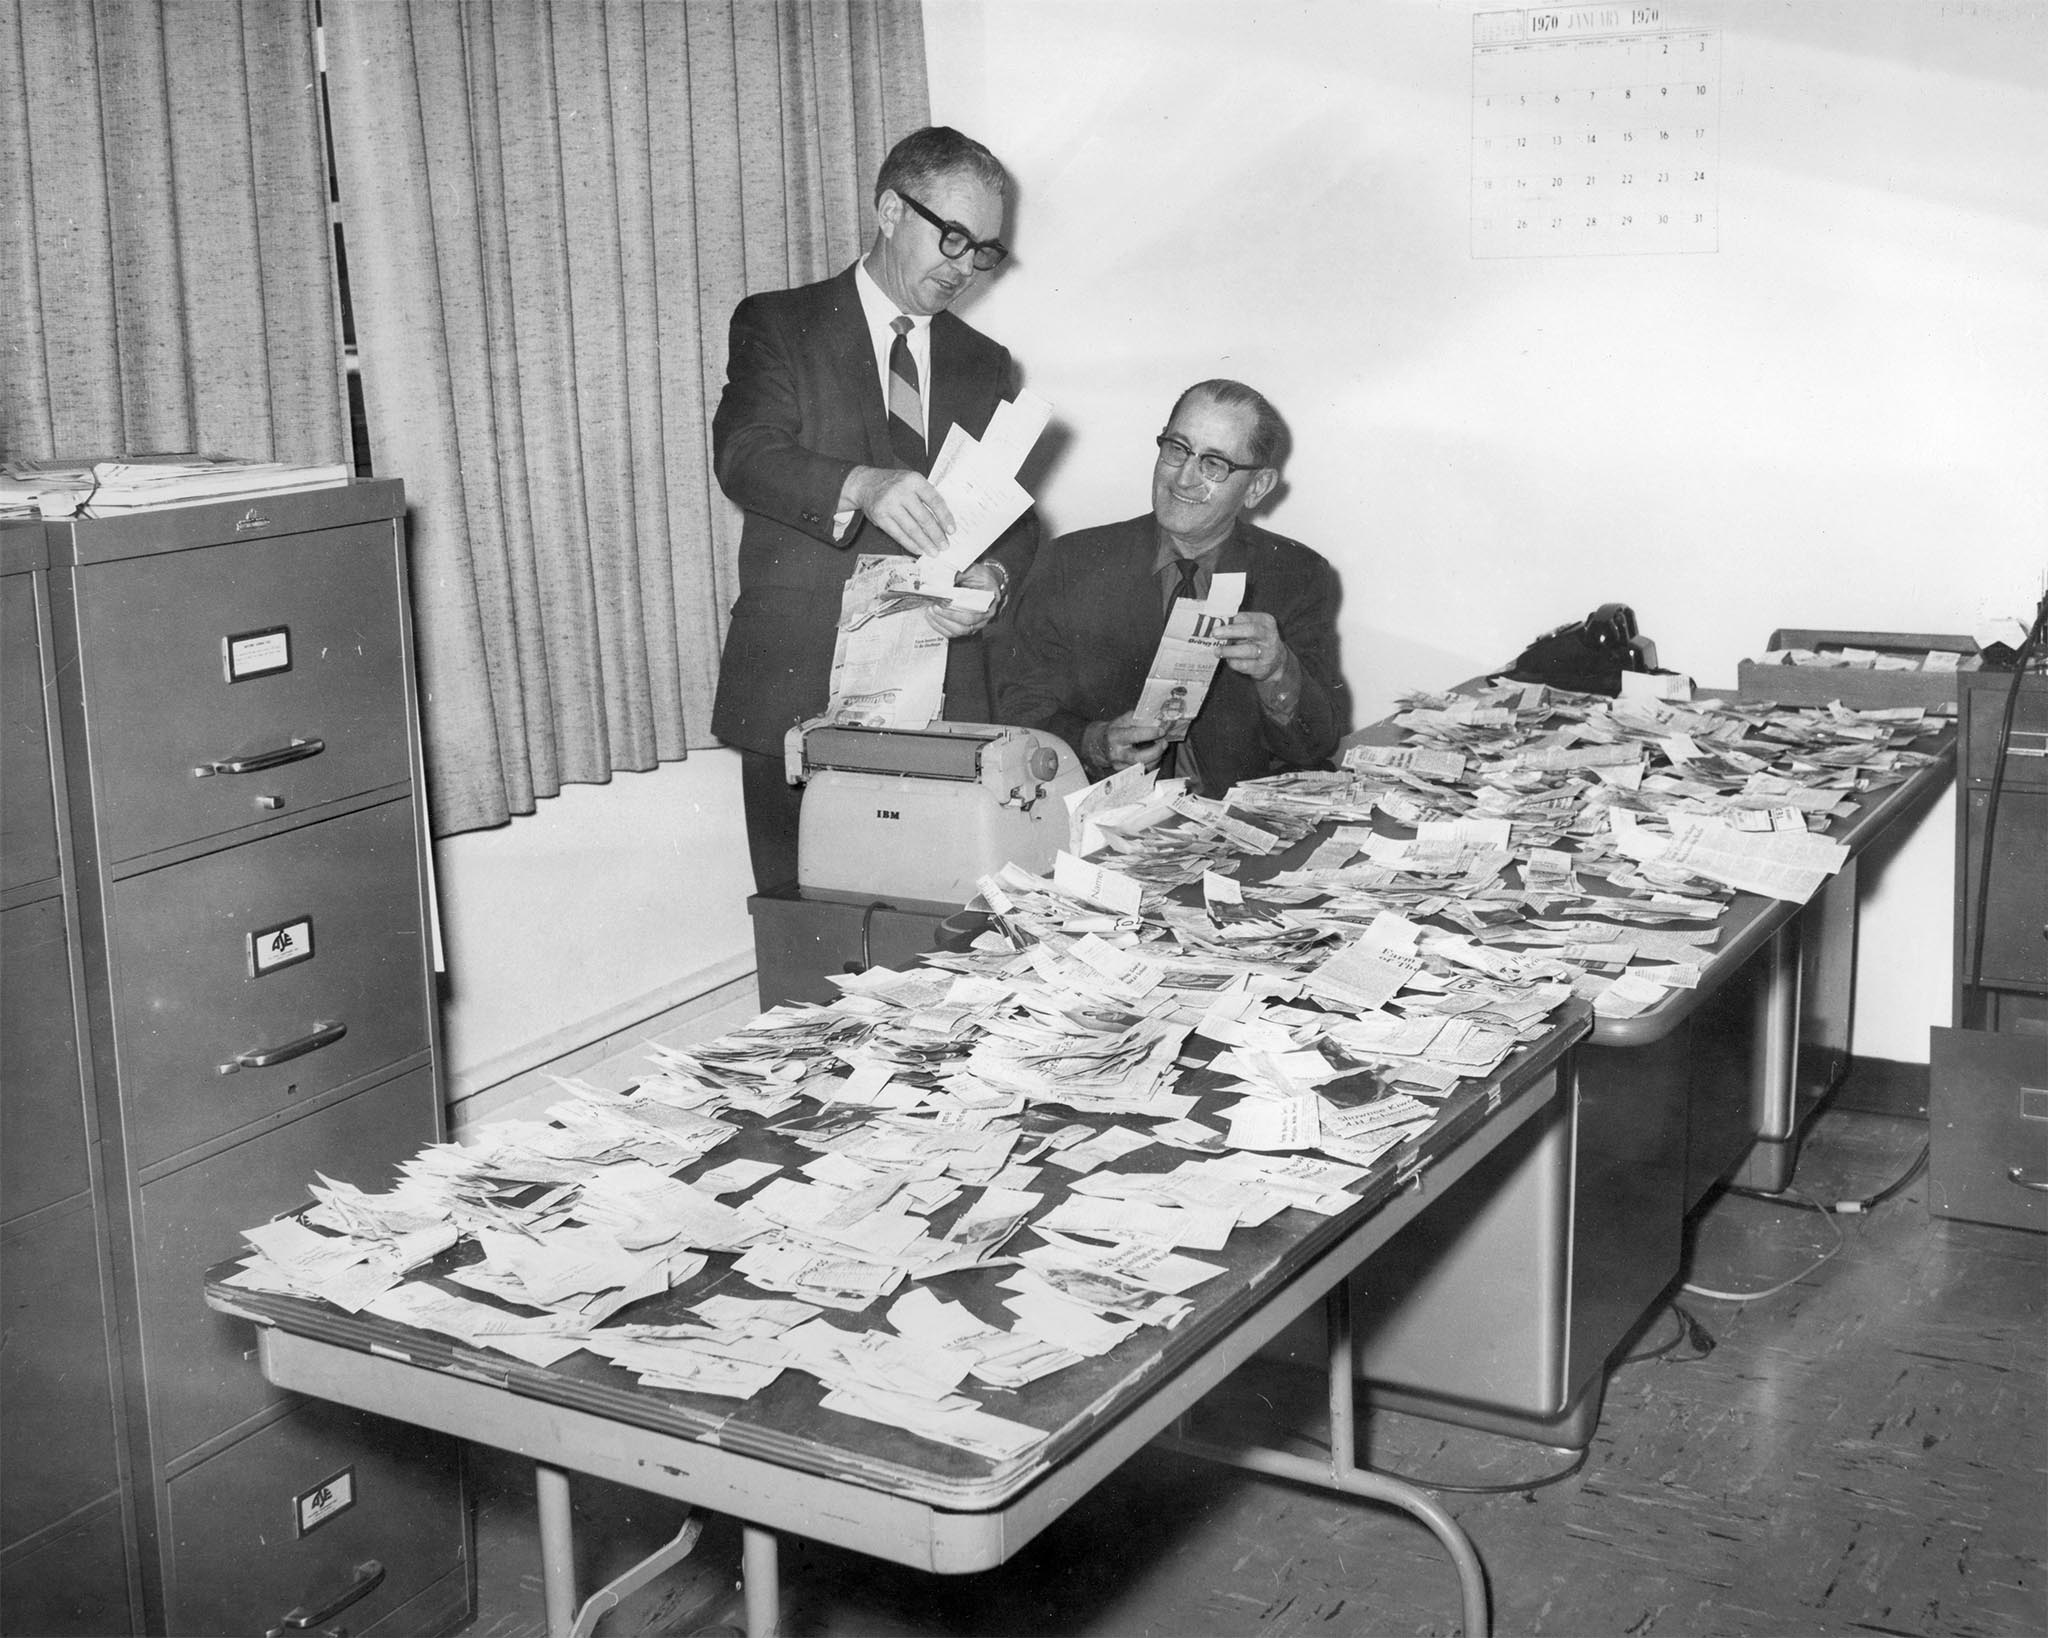 Keeping up with the latest legislative and county news is an important part of Oklahoma Farm Bureau. This 1970 photo features Lewis H. Munn, OKFB President (right), reviewing newspaper clippings about the organization's activities with Kenneth McFall, Executive Secretary. The stories, gathered by a press clipping service, represent news coverage from nearly every newspaper in Oklahoma on topics ranging from county board meetings to farm news on the state level. Clippings were grouped and returned to appropriate county Farm Bureaus featured in the stories.